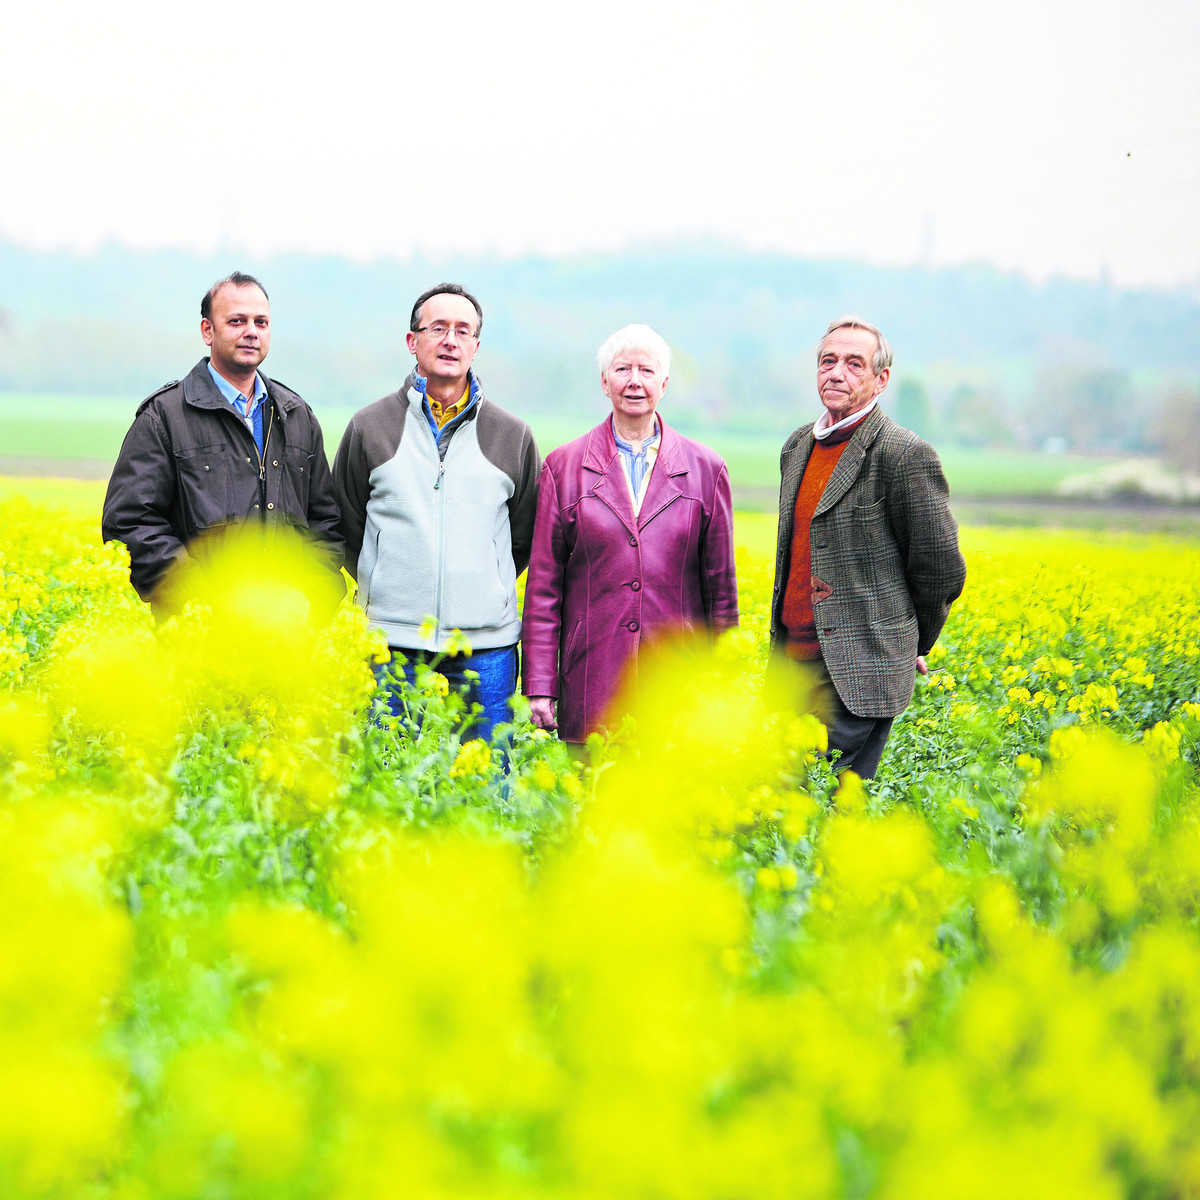 Campaigners pictured in one of the fields which could disappear. From left to right: Dhiraj Kallie, John Platts, Jenny Standen and John Standen